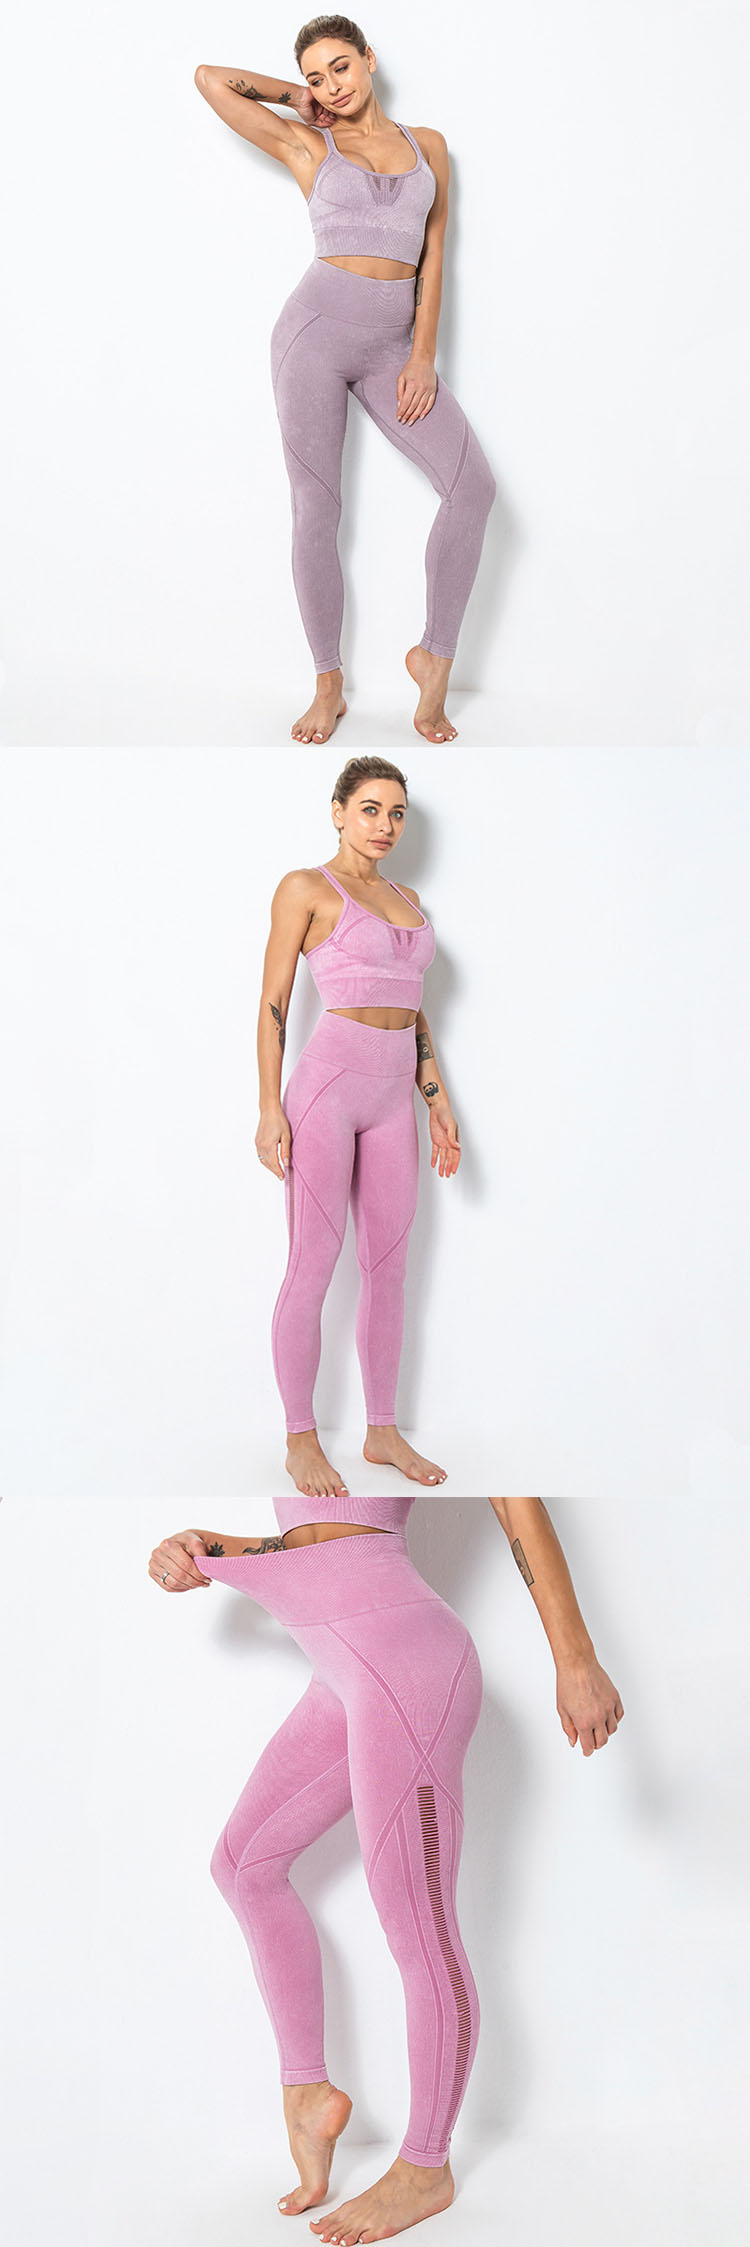 Knitted yoga pants have good tolerance, increase the texture and breathability of yoga pants.